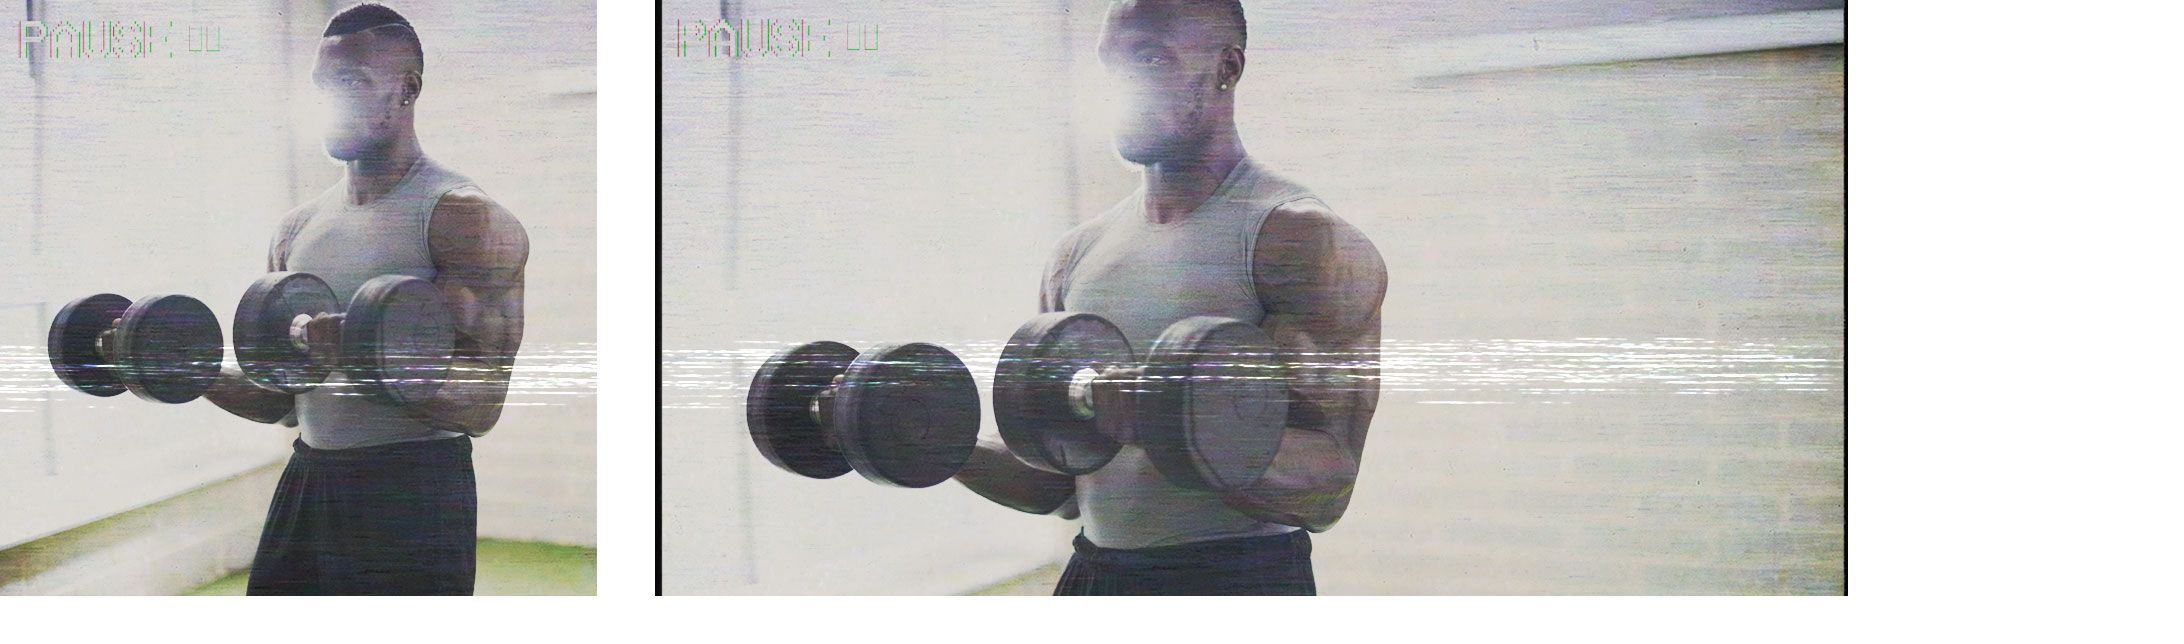 Challenge Yourself With This 5-Move, Full-Body Dumbbell Workout